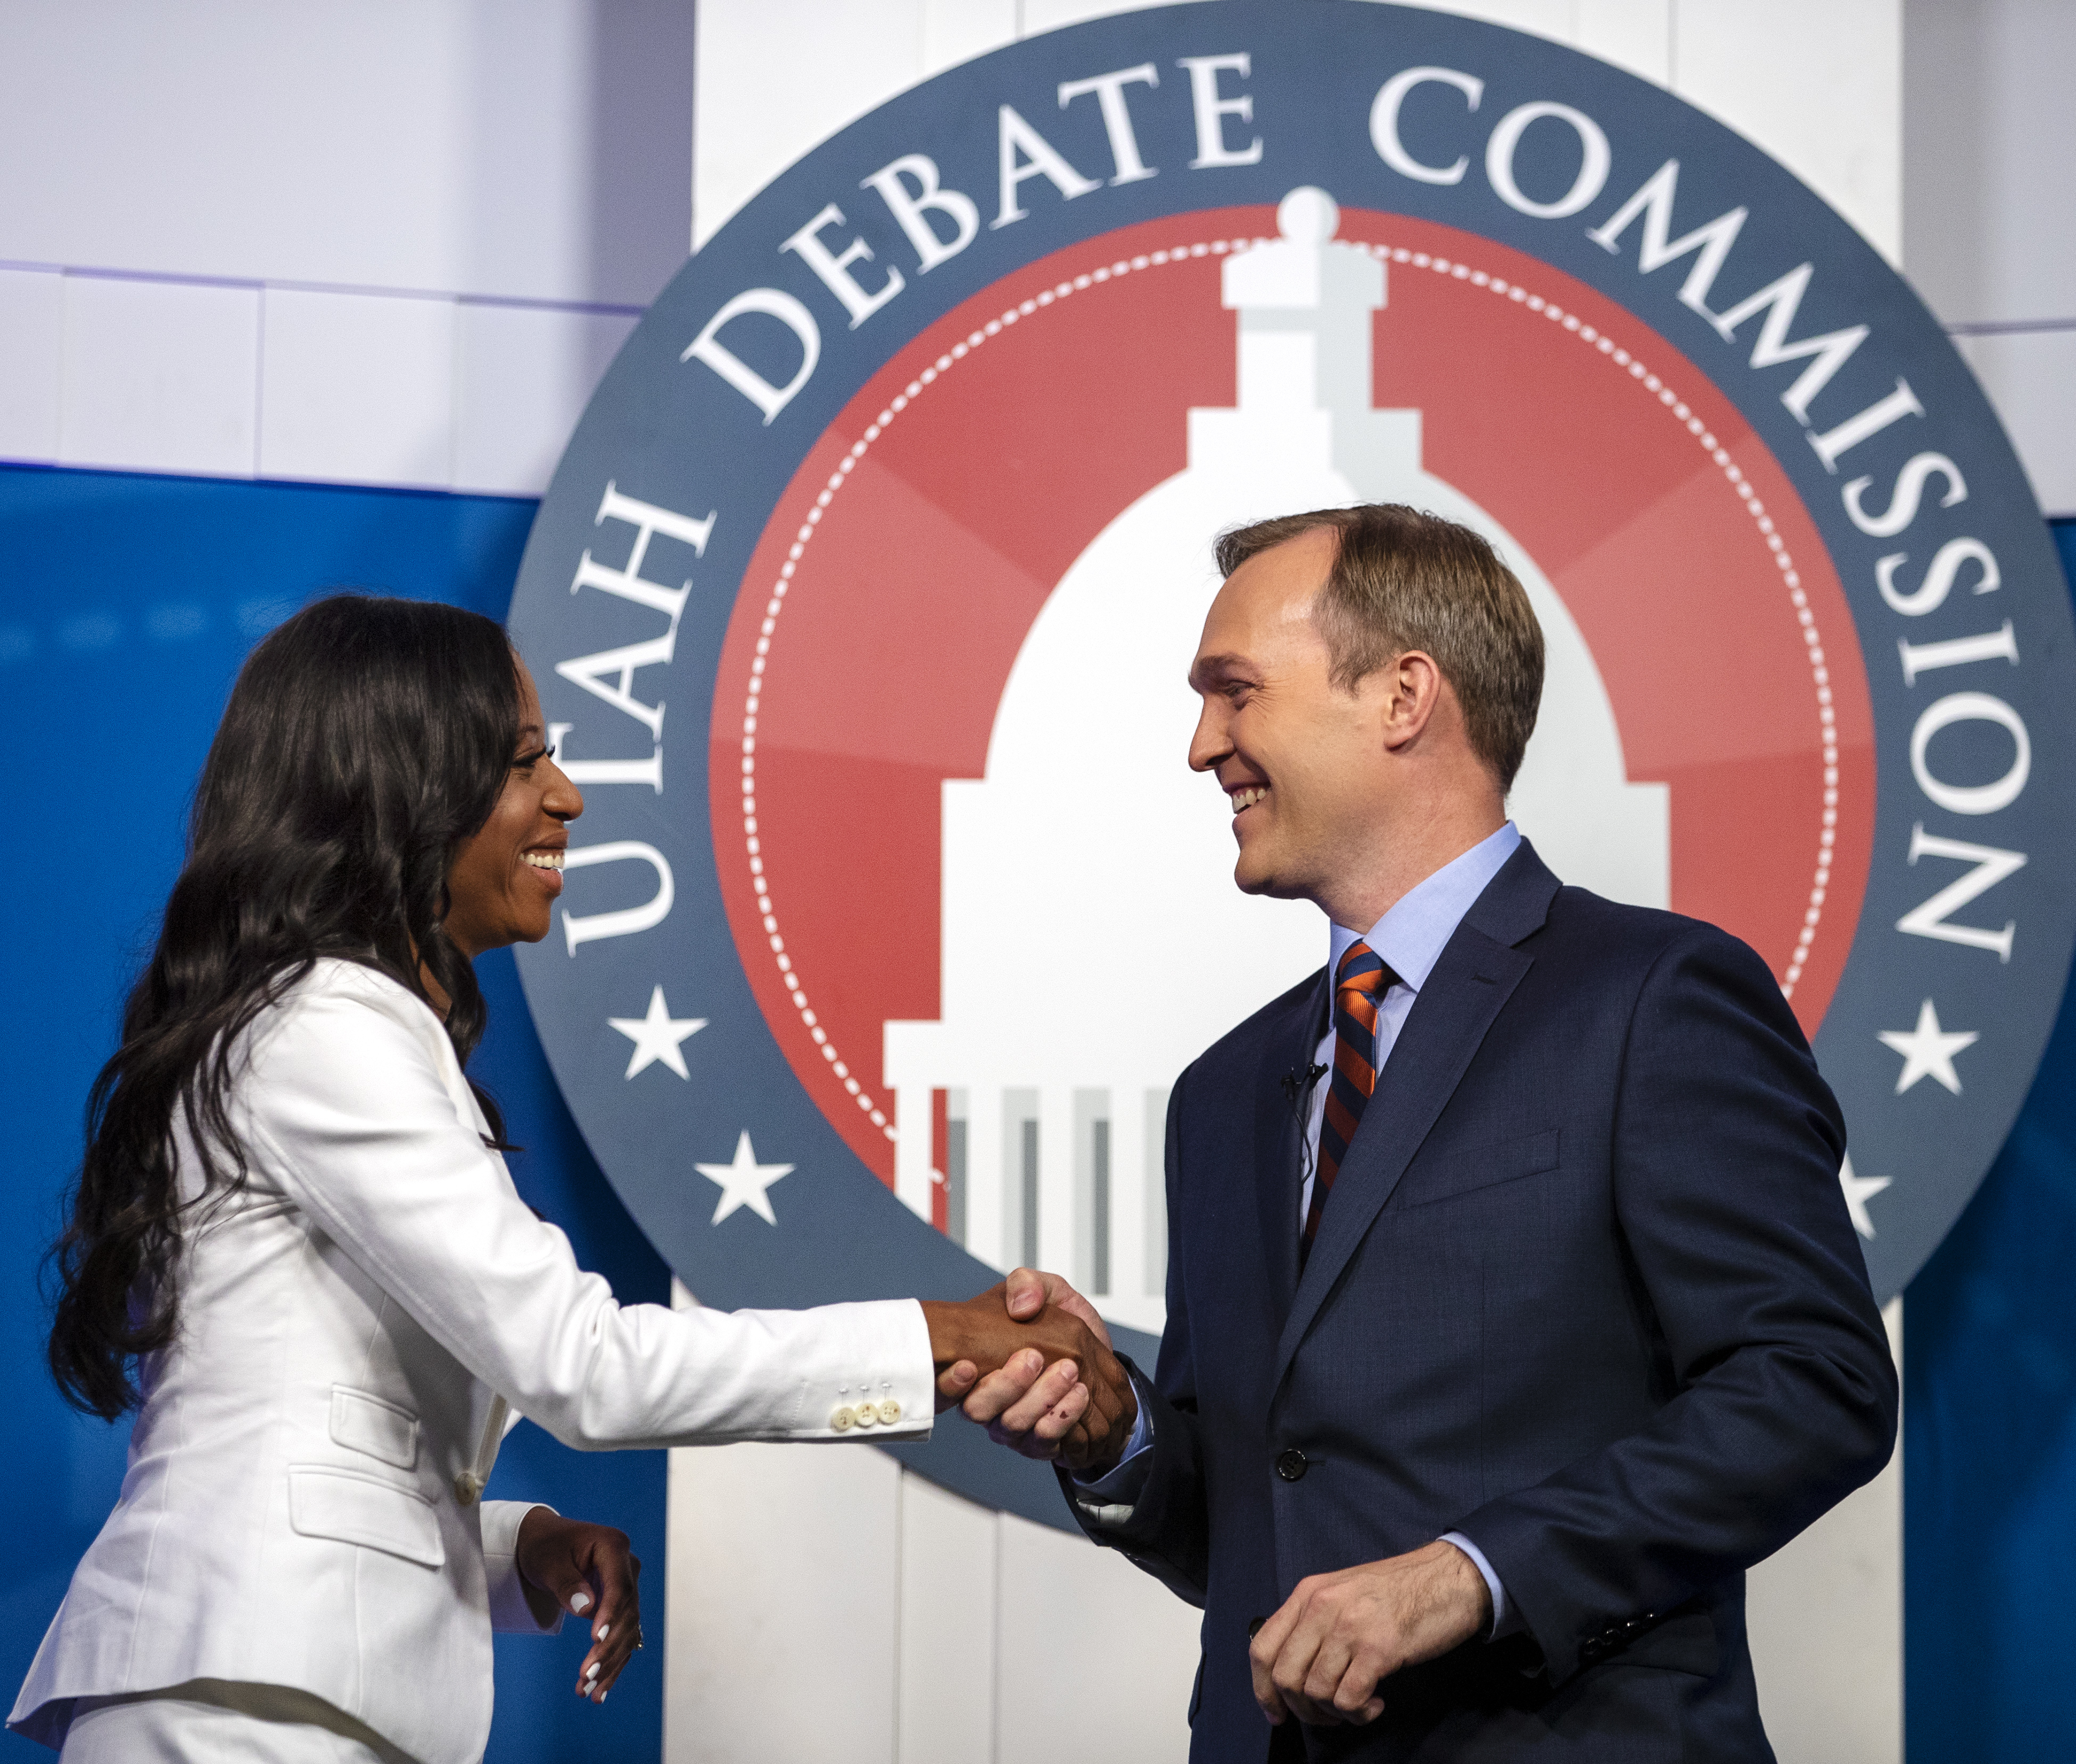 Mia Love calls for 'unethical' Ben McAdams to withdraw from race after FEC belatedly backs her fundraising